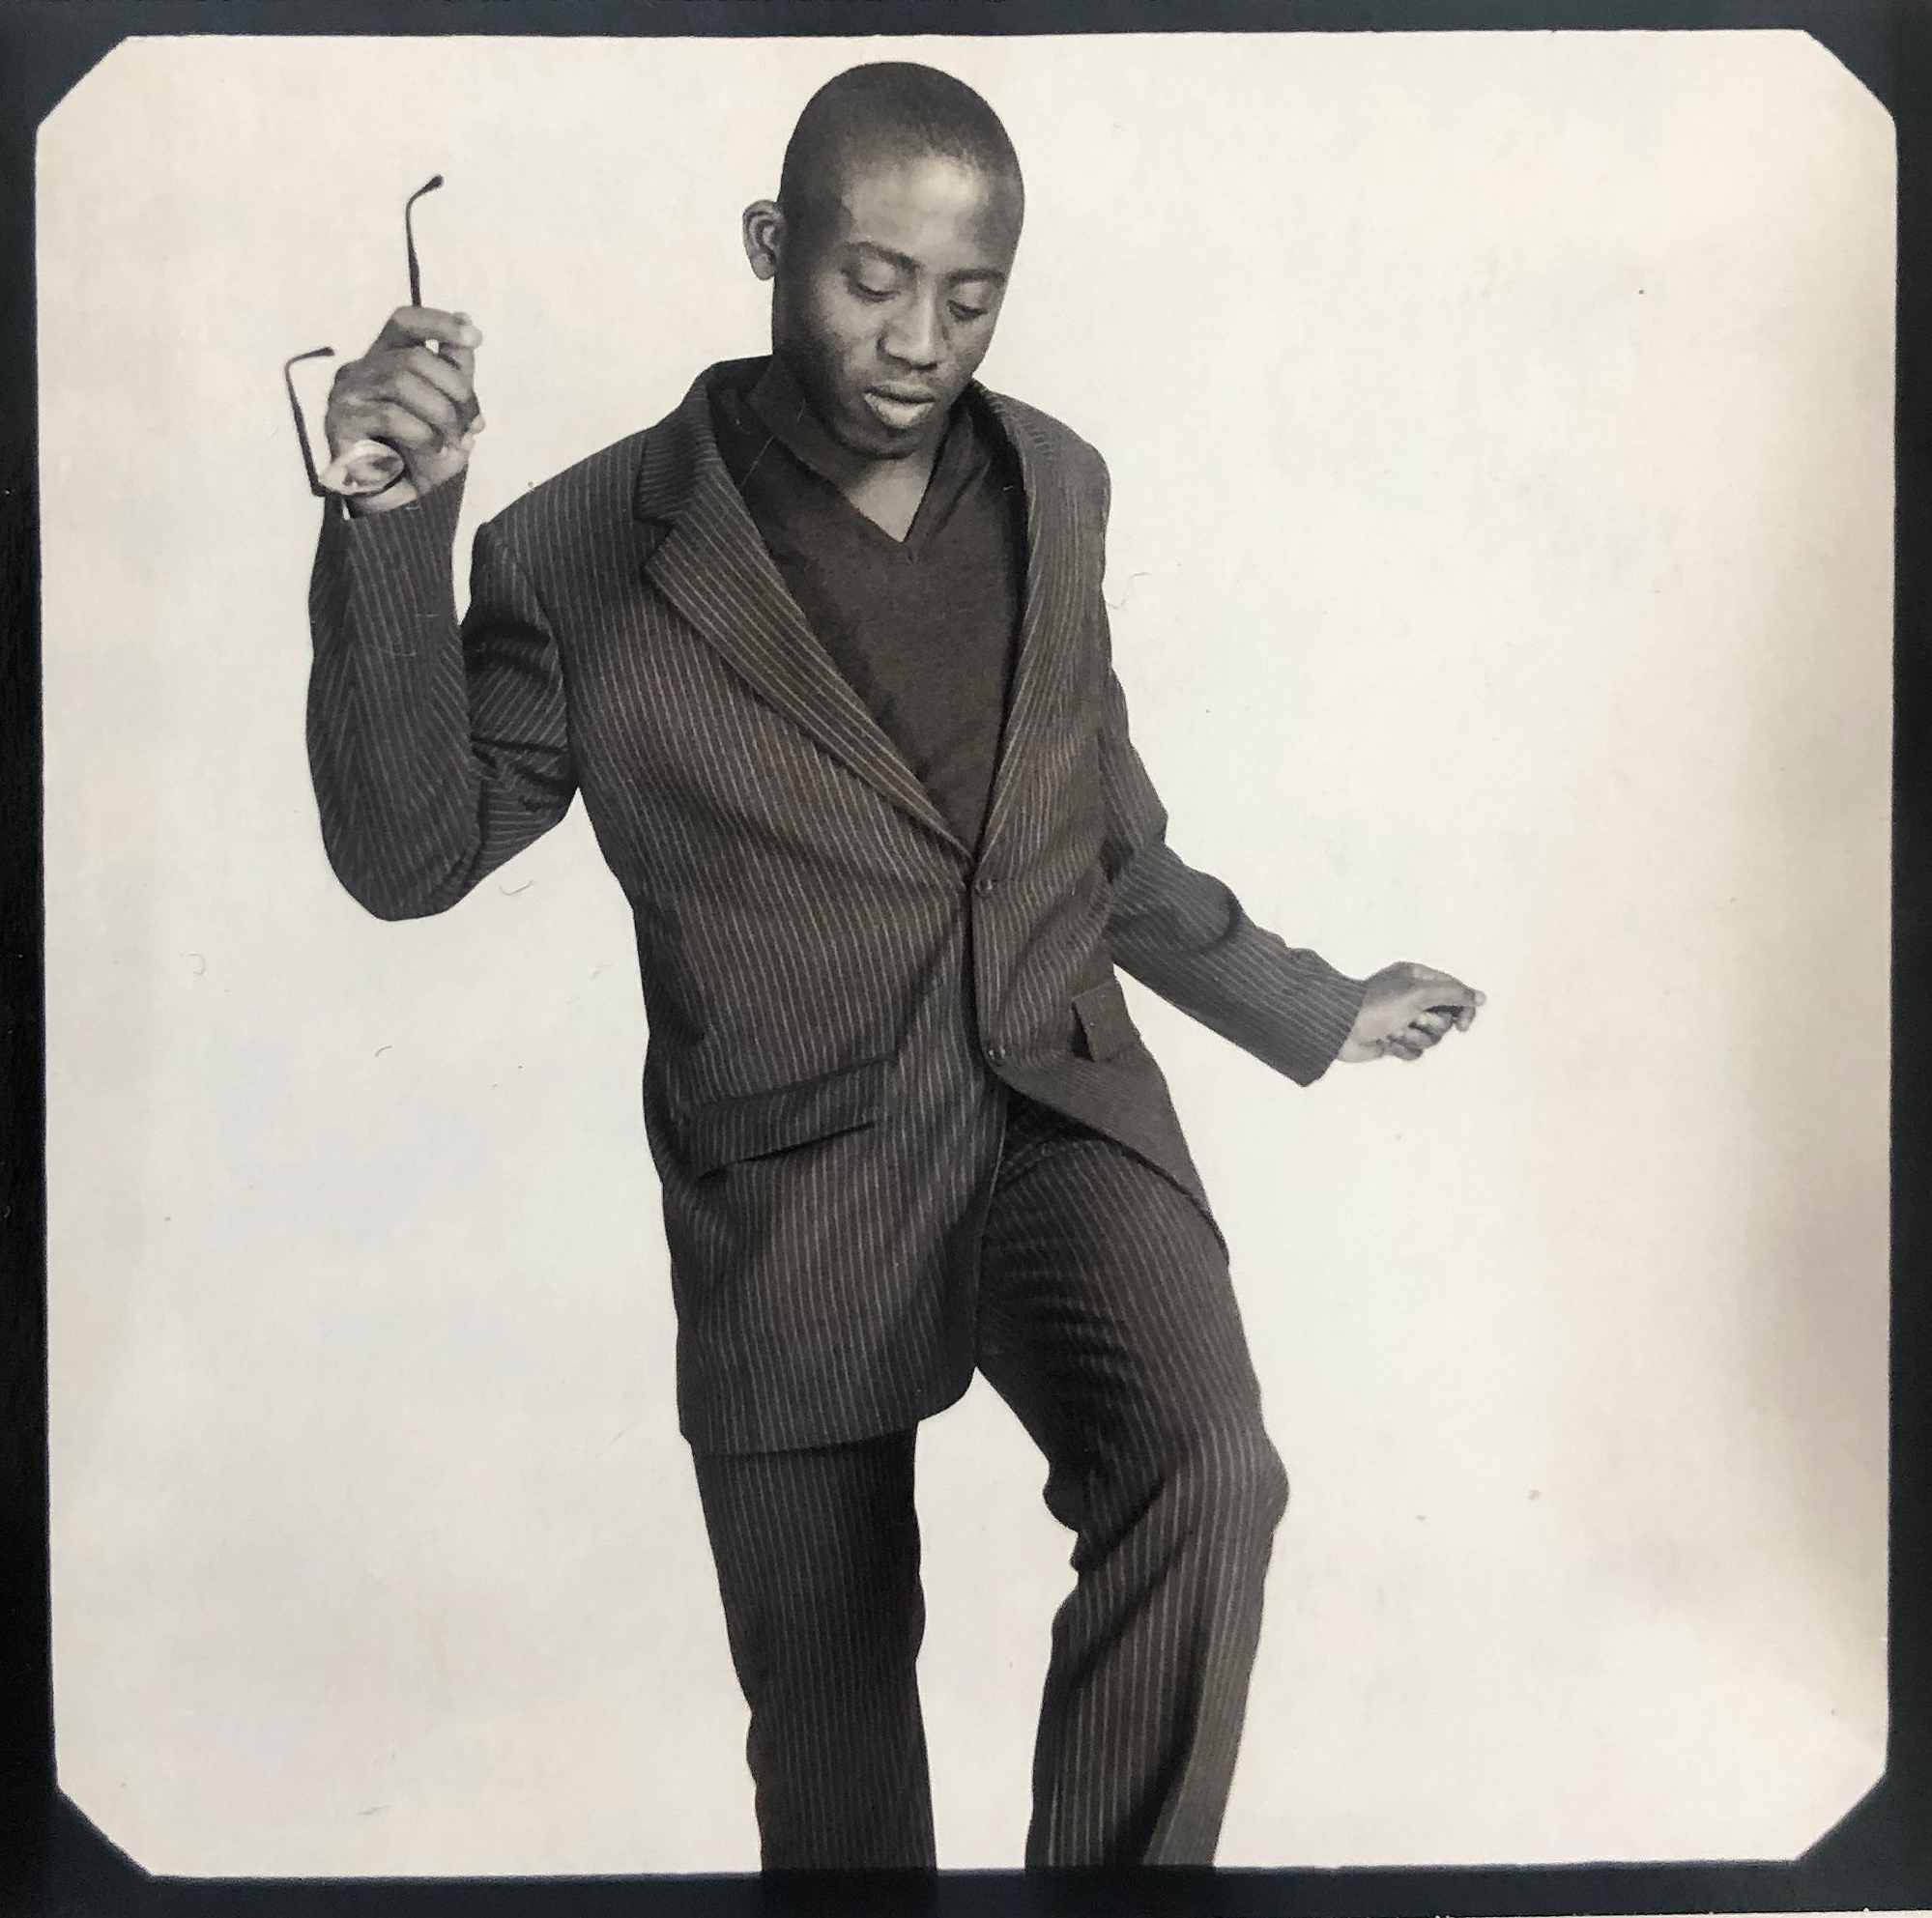 A Polaroid of Enninful in the 1990s from his personal collection.